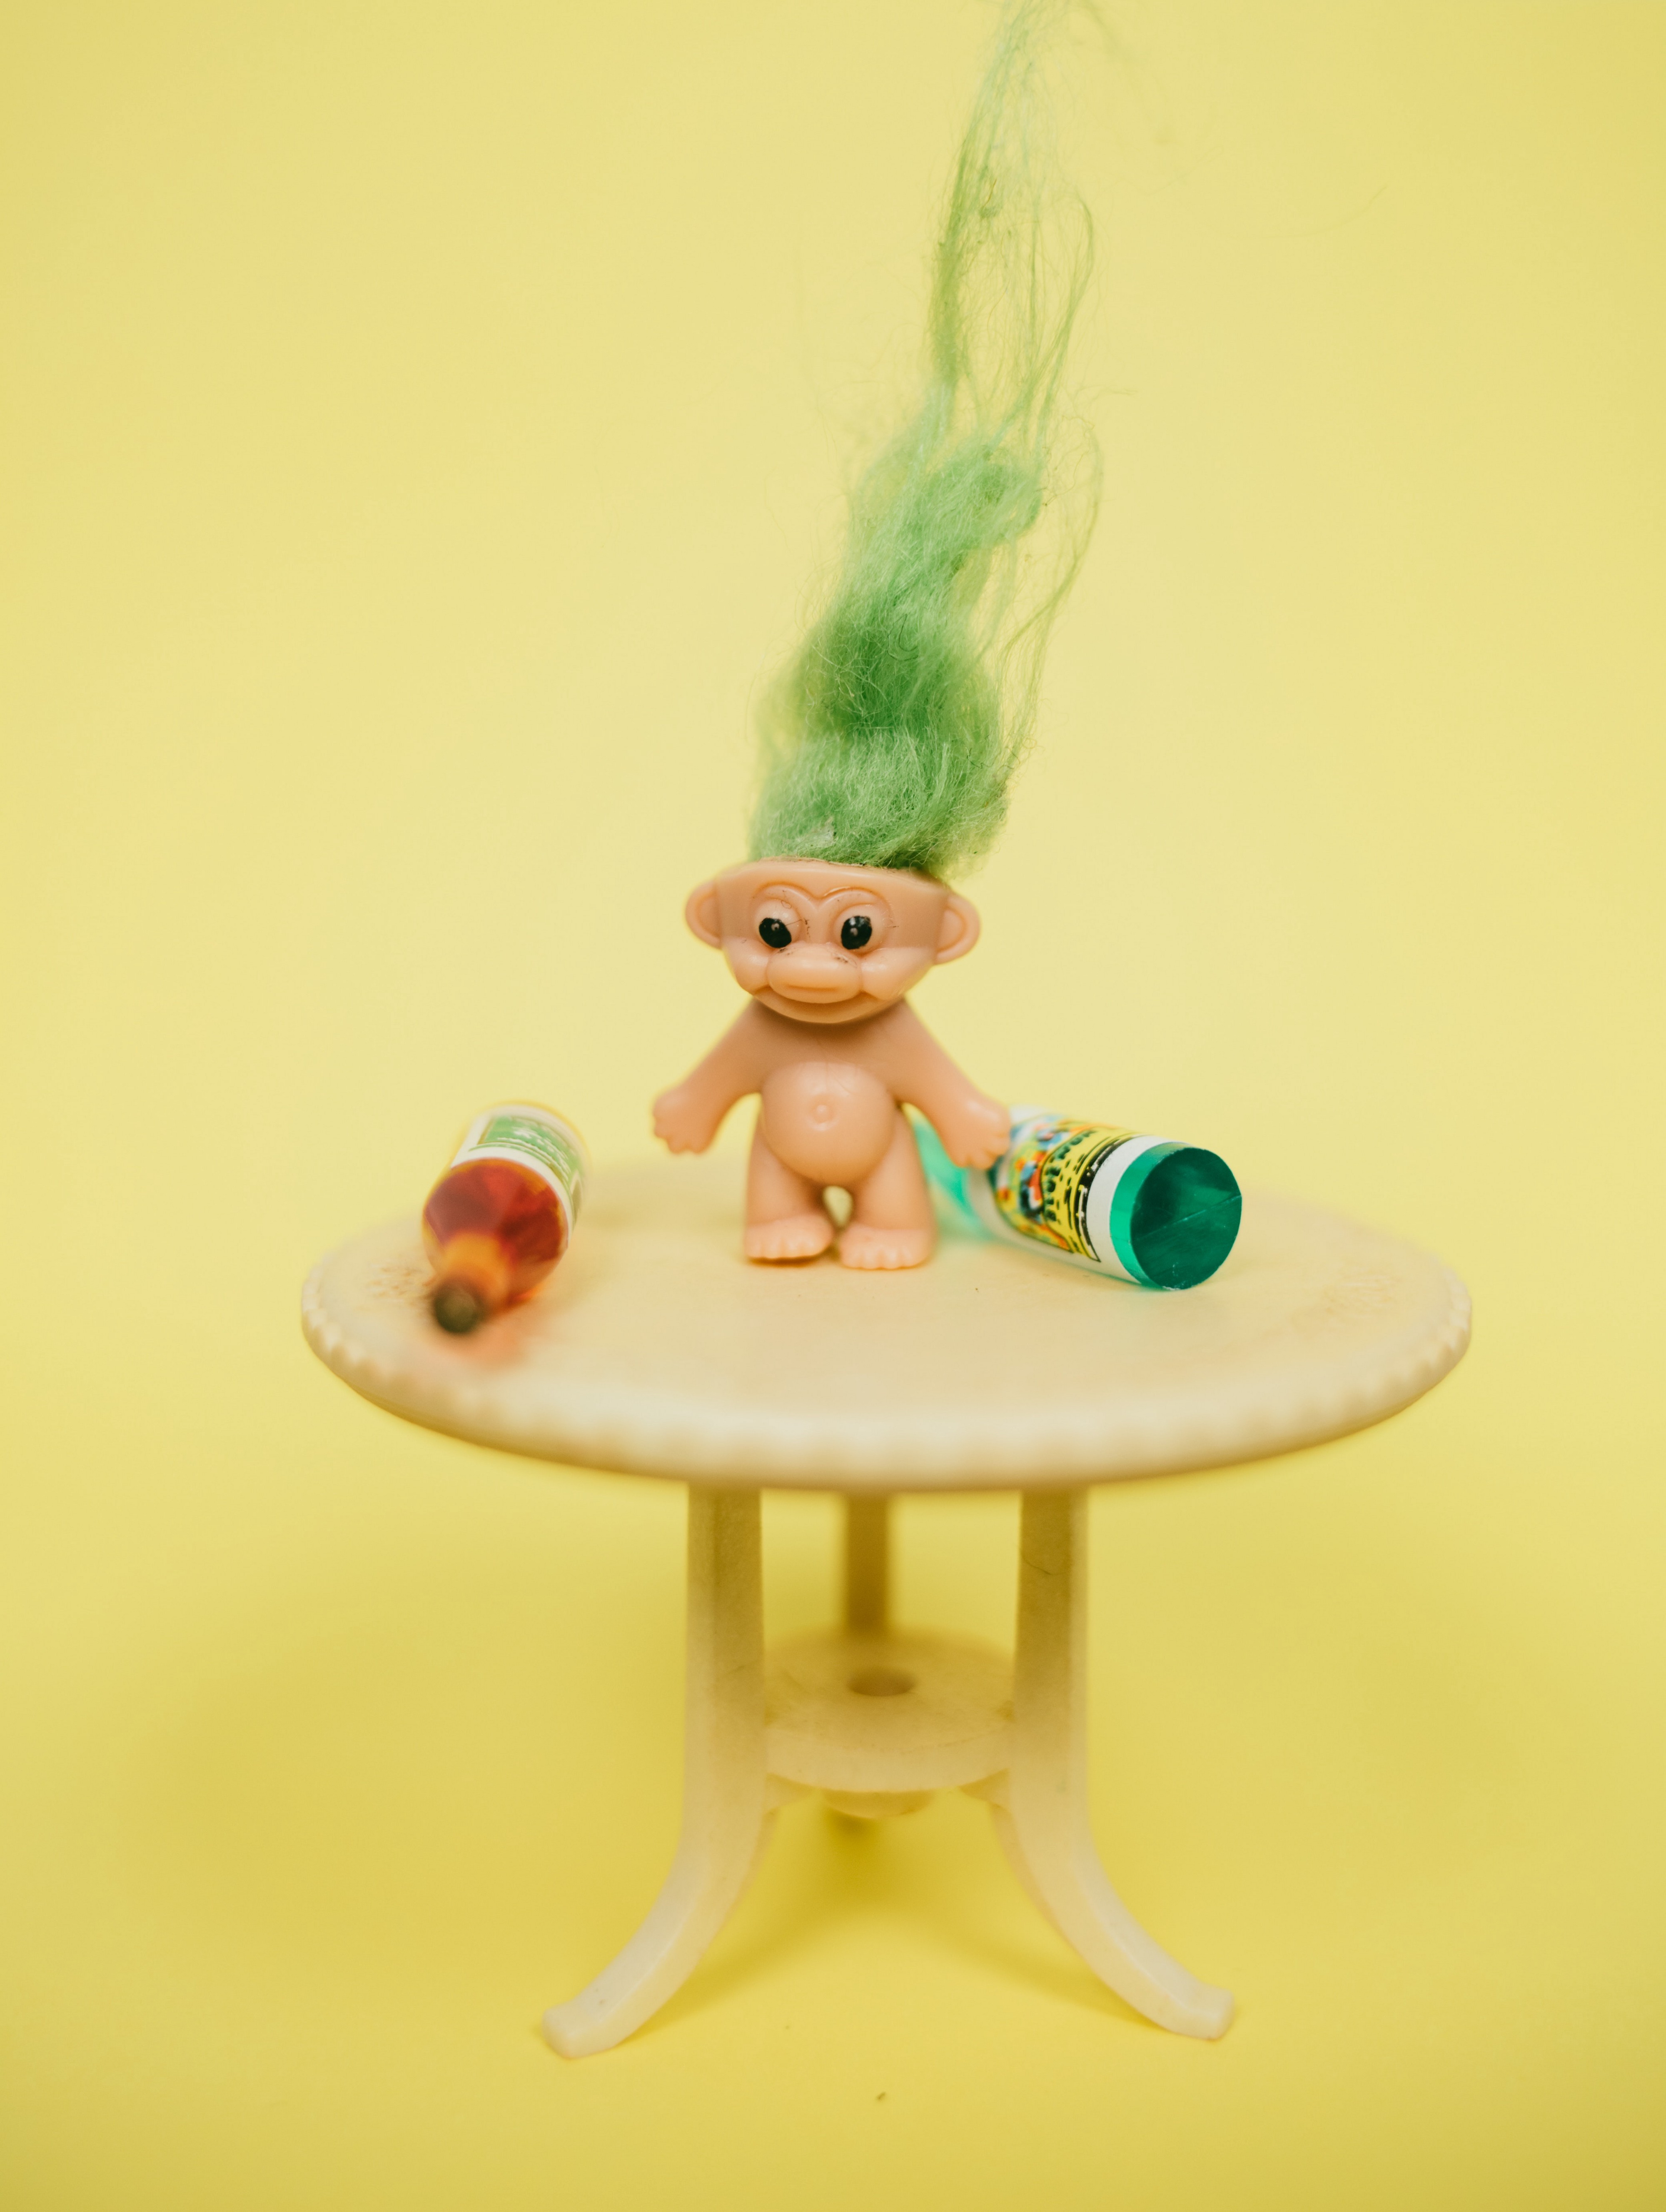 A strange picture with a toy troll in between two bottles while standing on a piece of furniture